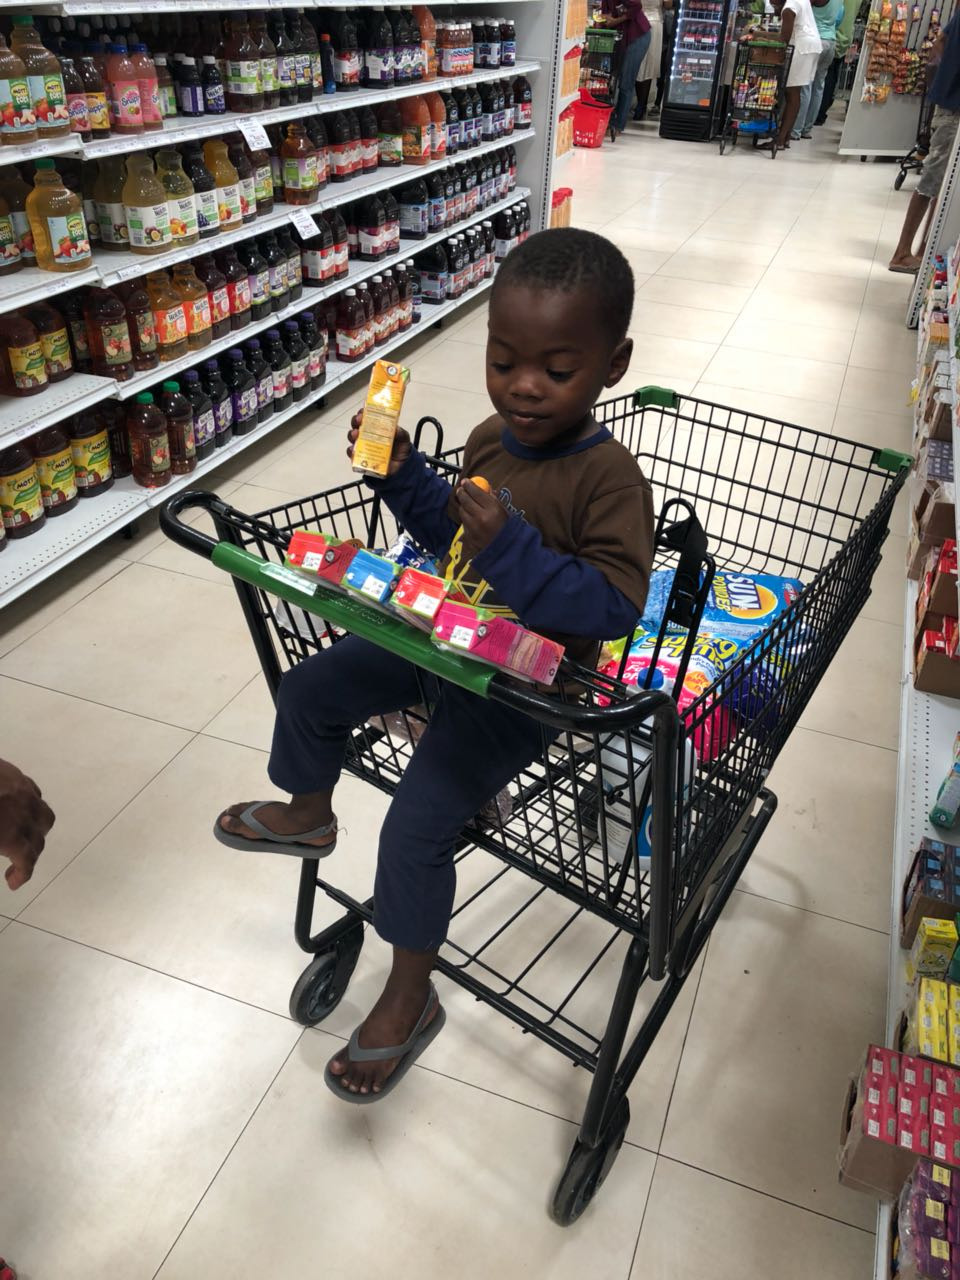 Child in Cart Looking at Juice Time Boxes